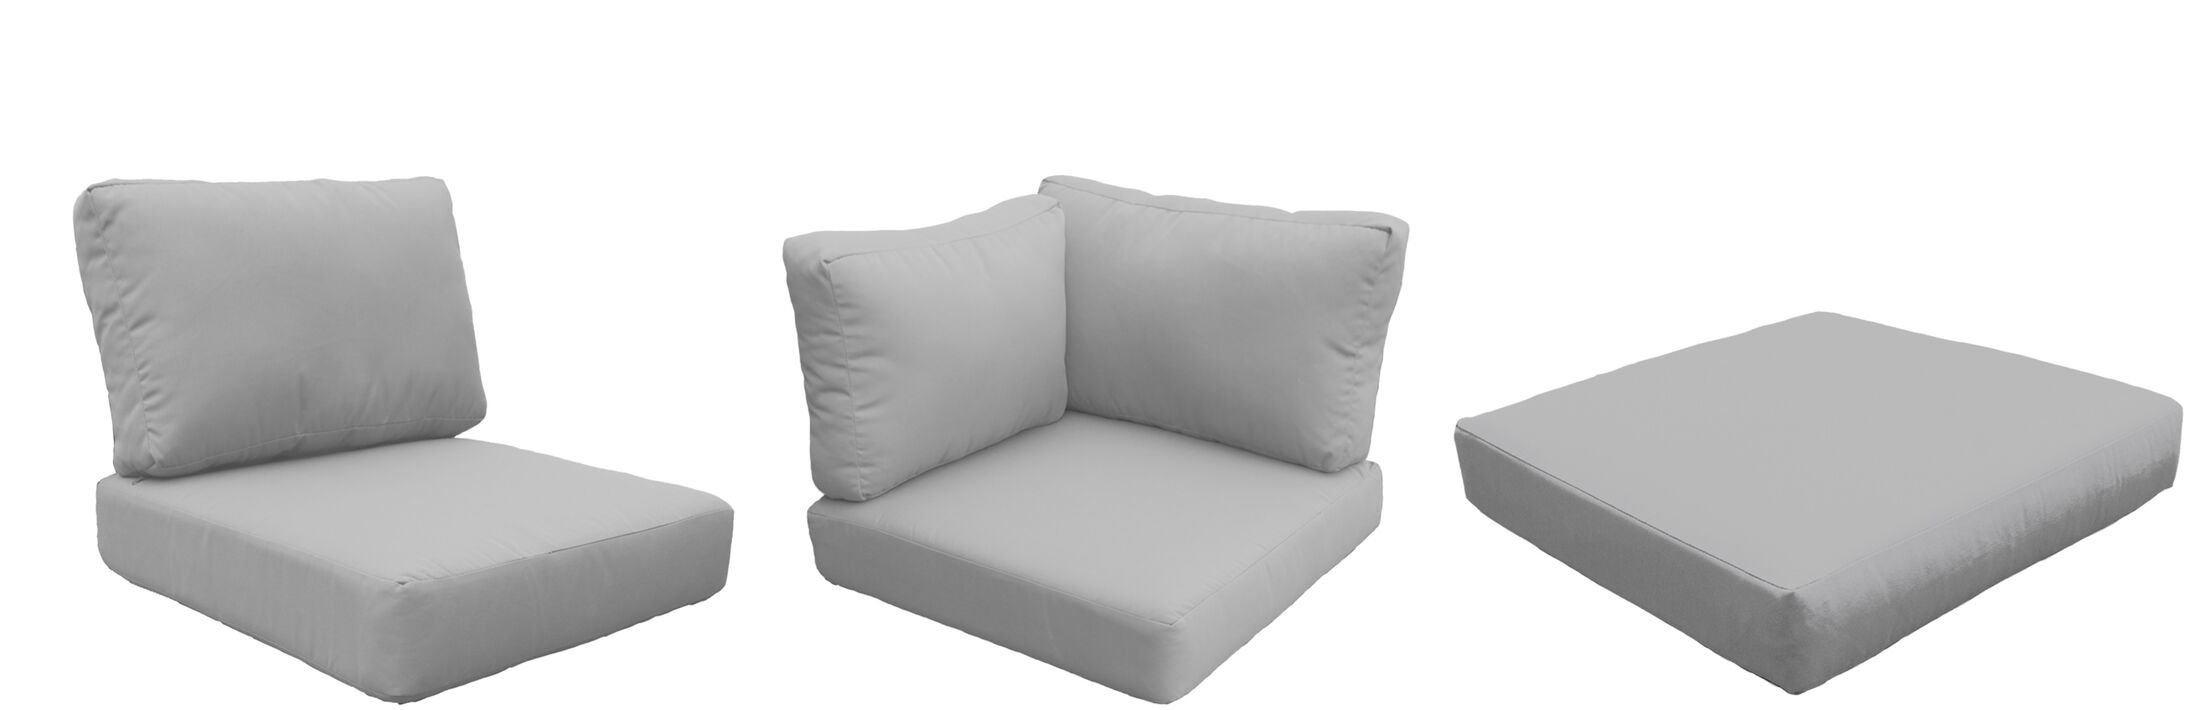 East Village Outdoor 21 Piece Lounge Chair Cushion Set Fabric: Gray